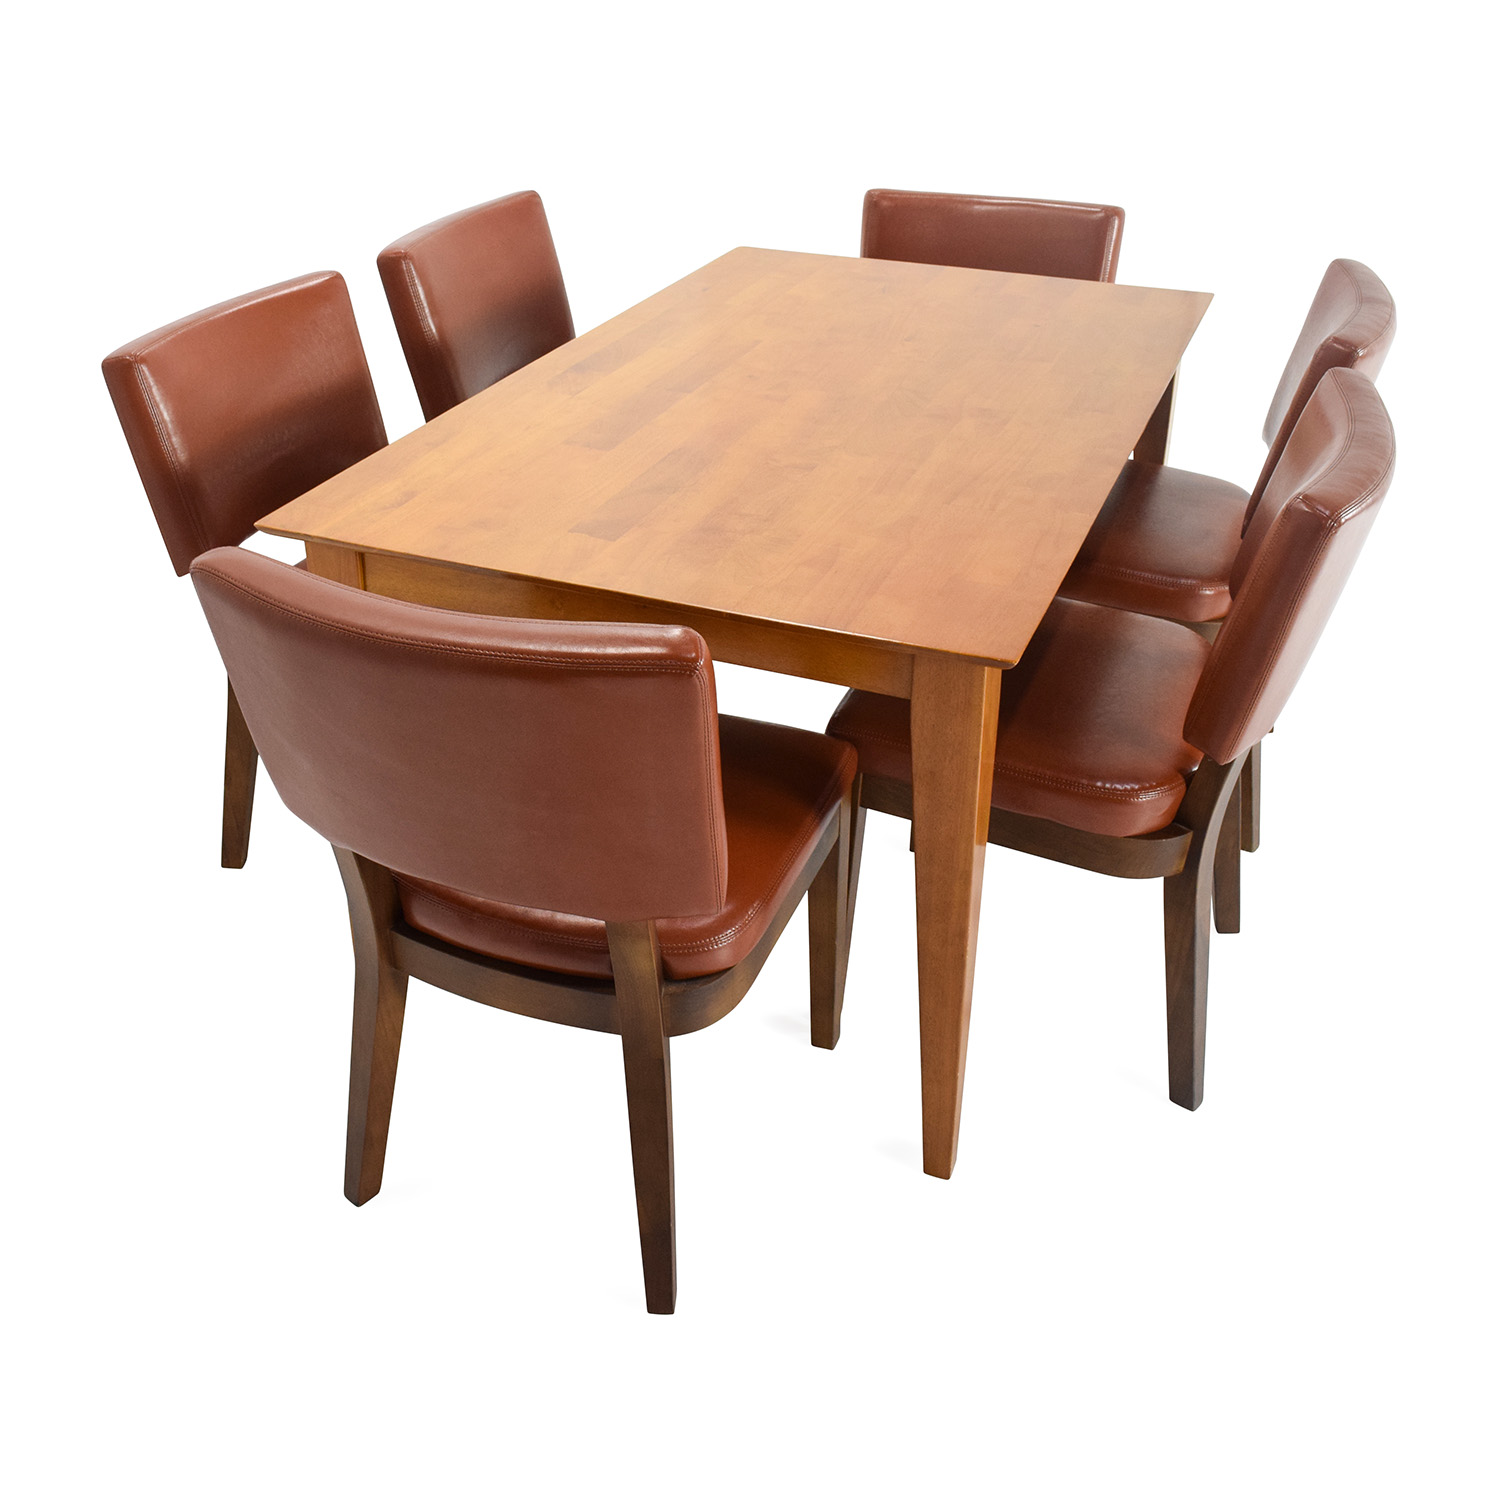 Market dining room table 85 off cost plus world market for Table 85 restaurant